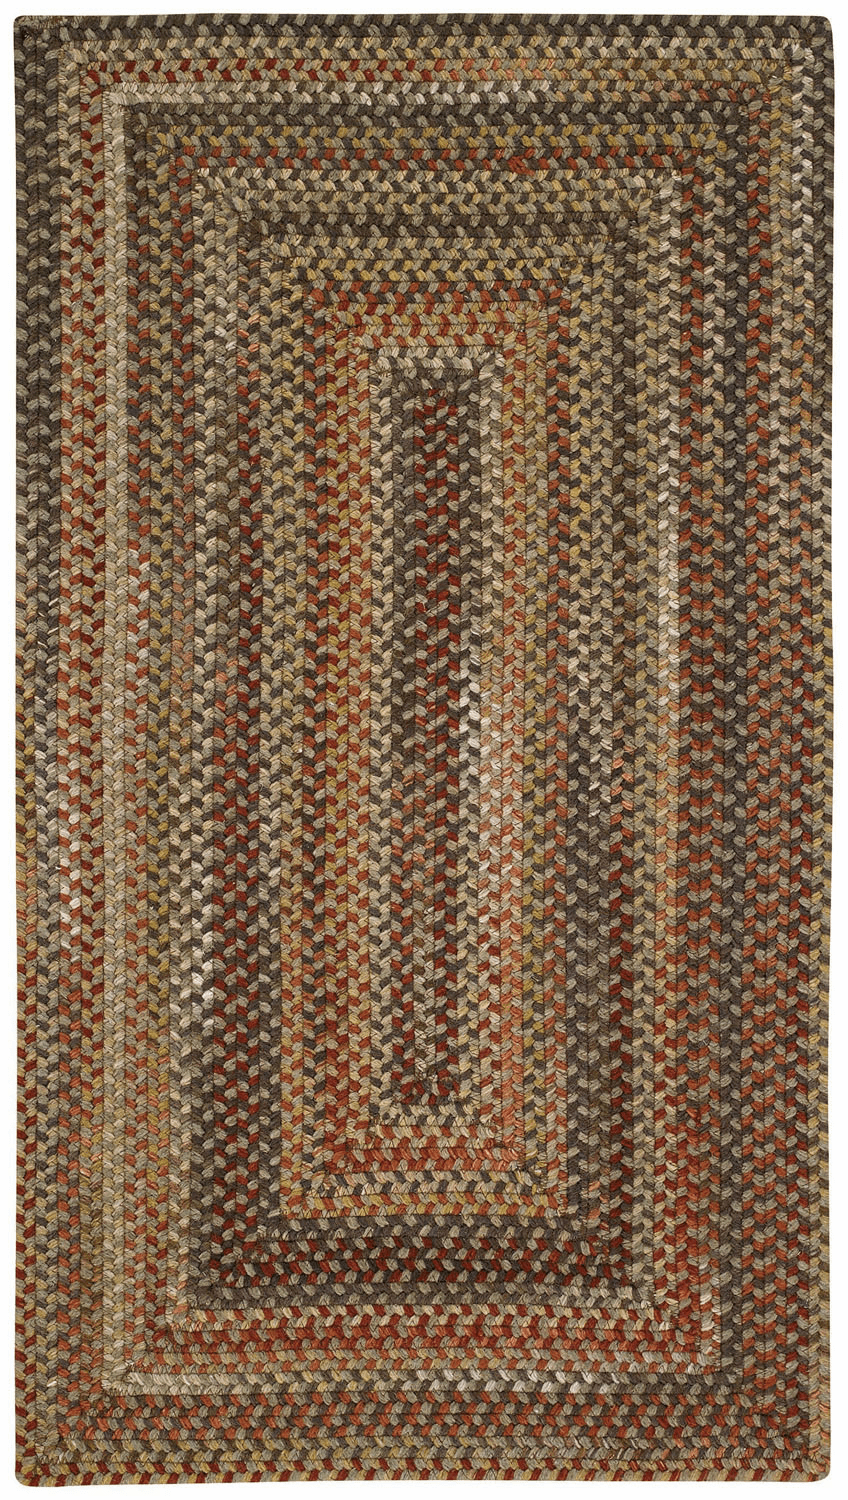 Hand-Braided Brown Hues Rug